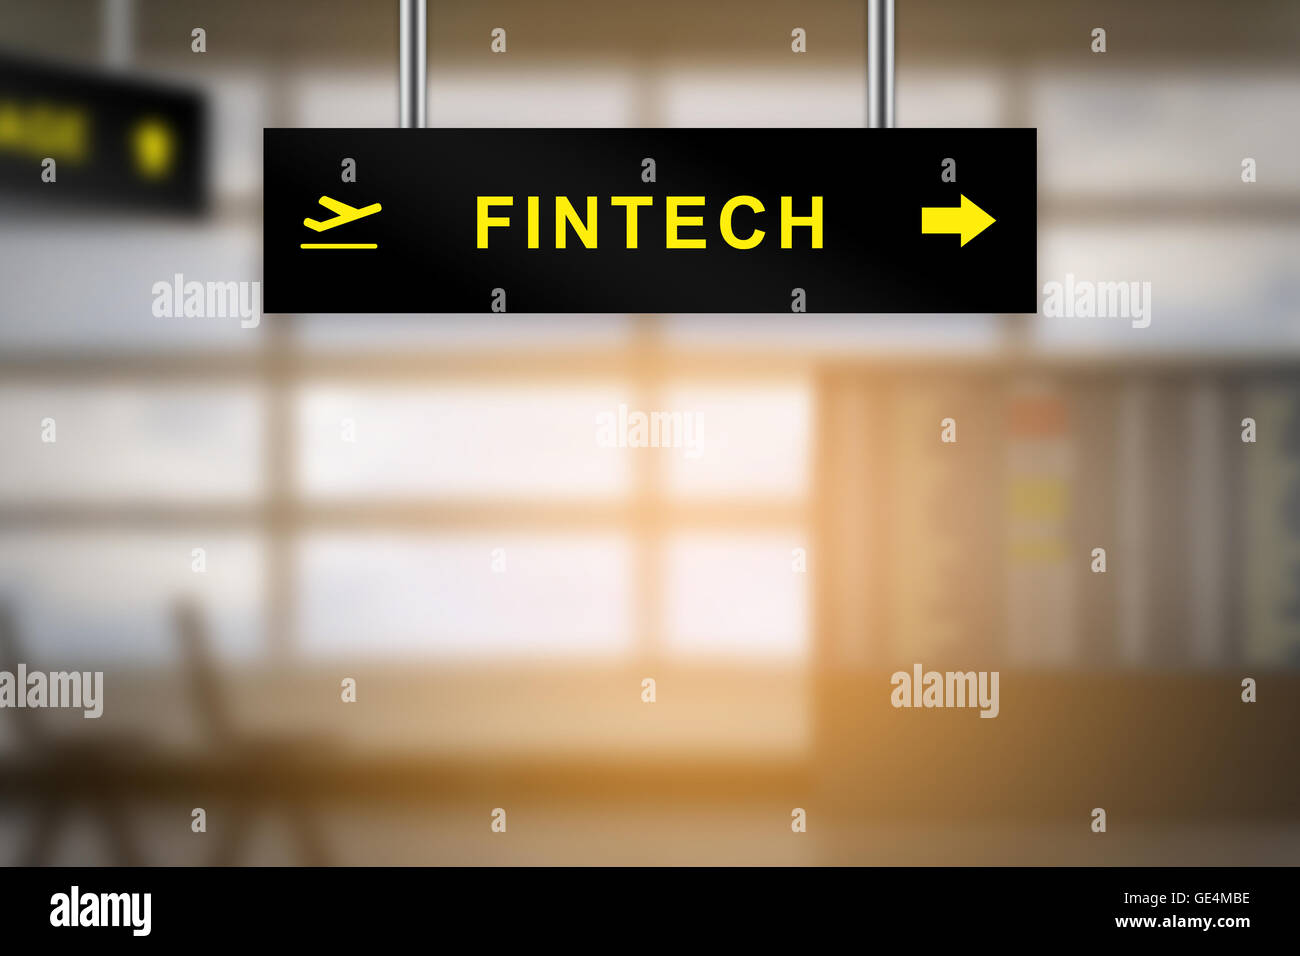 FINTECH or financial technology on airport sign board with blurred background and copy space - Stock Image